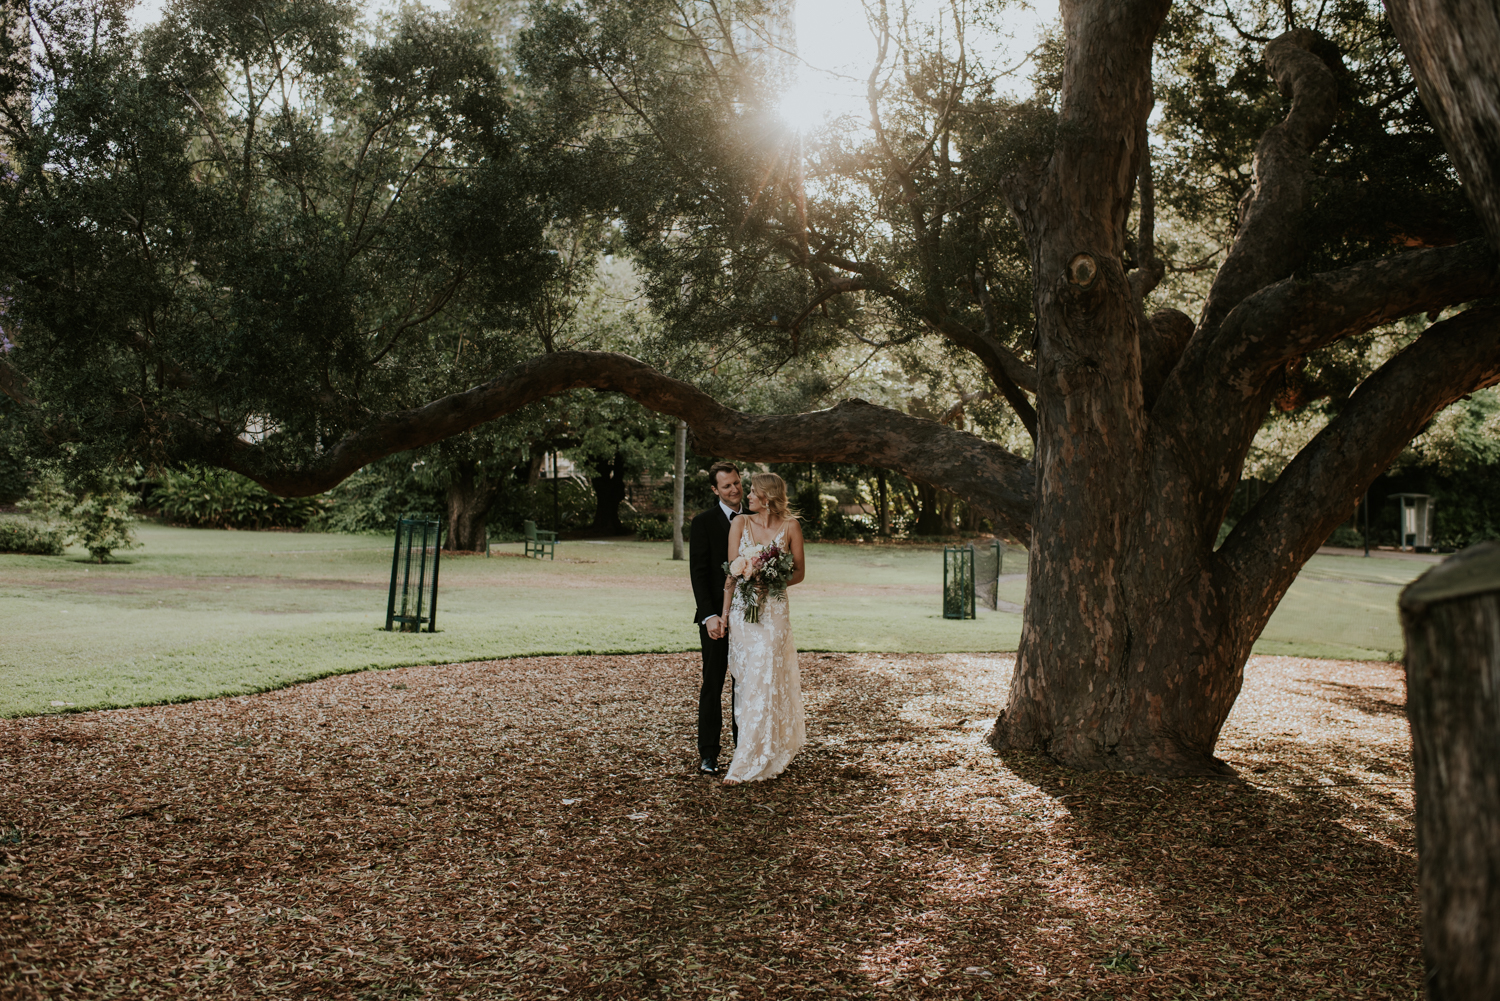 Brisbane Wedding Photographer | Engagement-Elopement Photography | Factory51-City Botantic Gardens Wedding-49.jpg